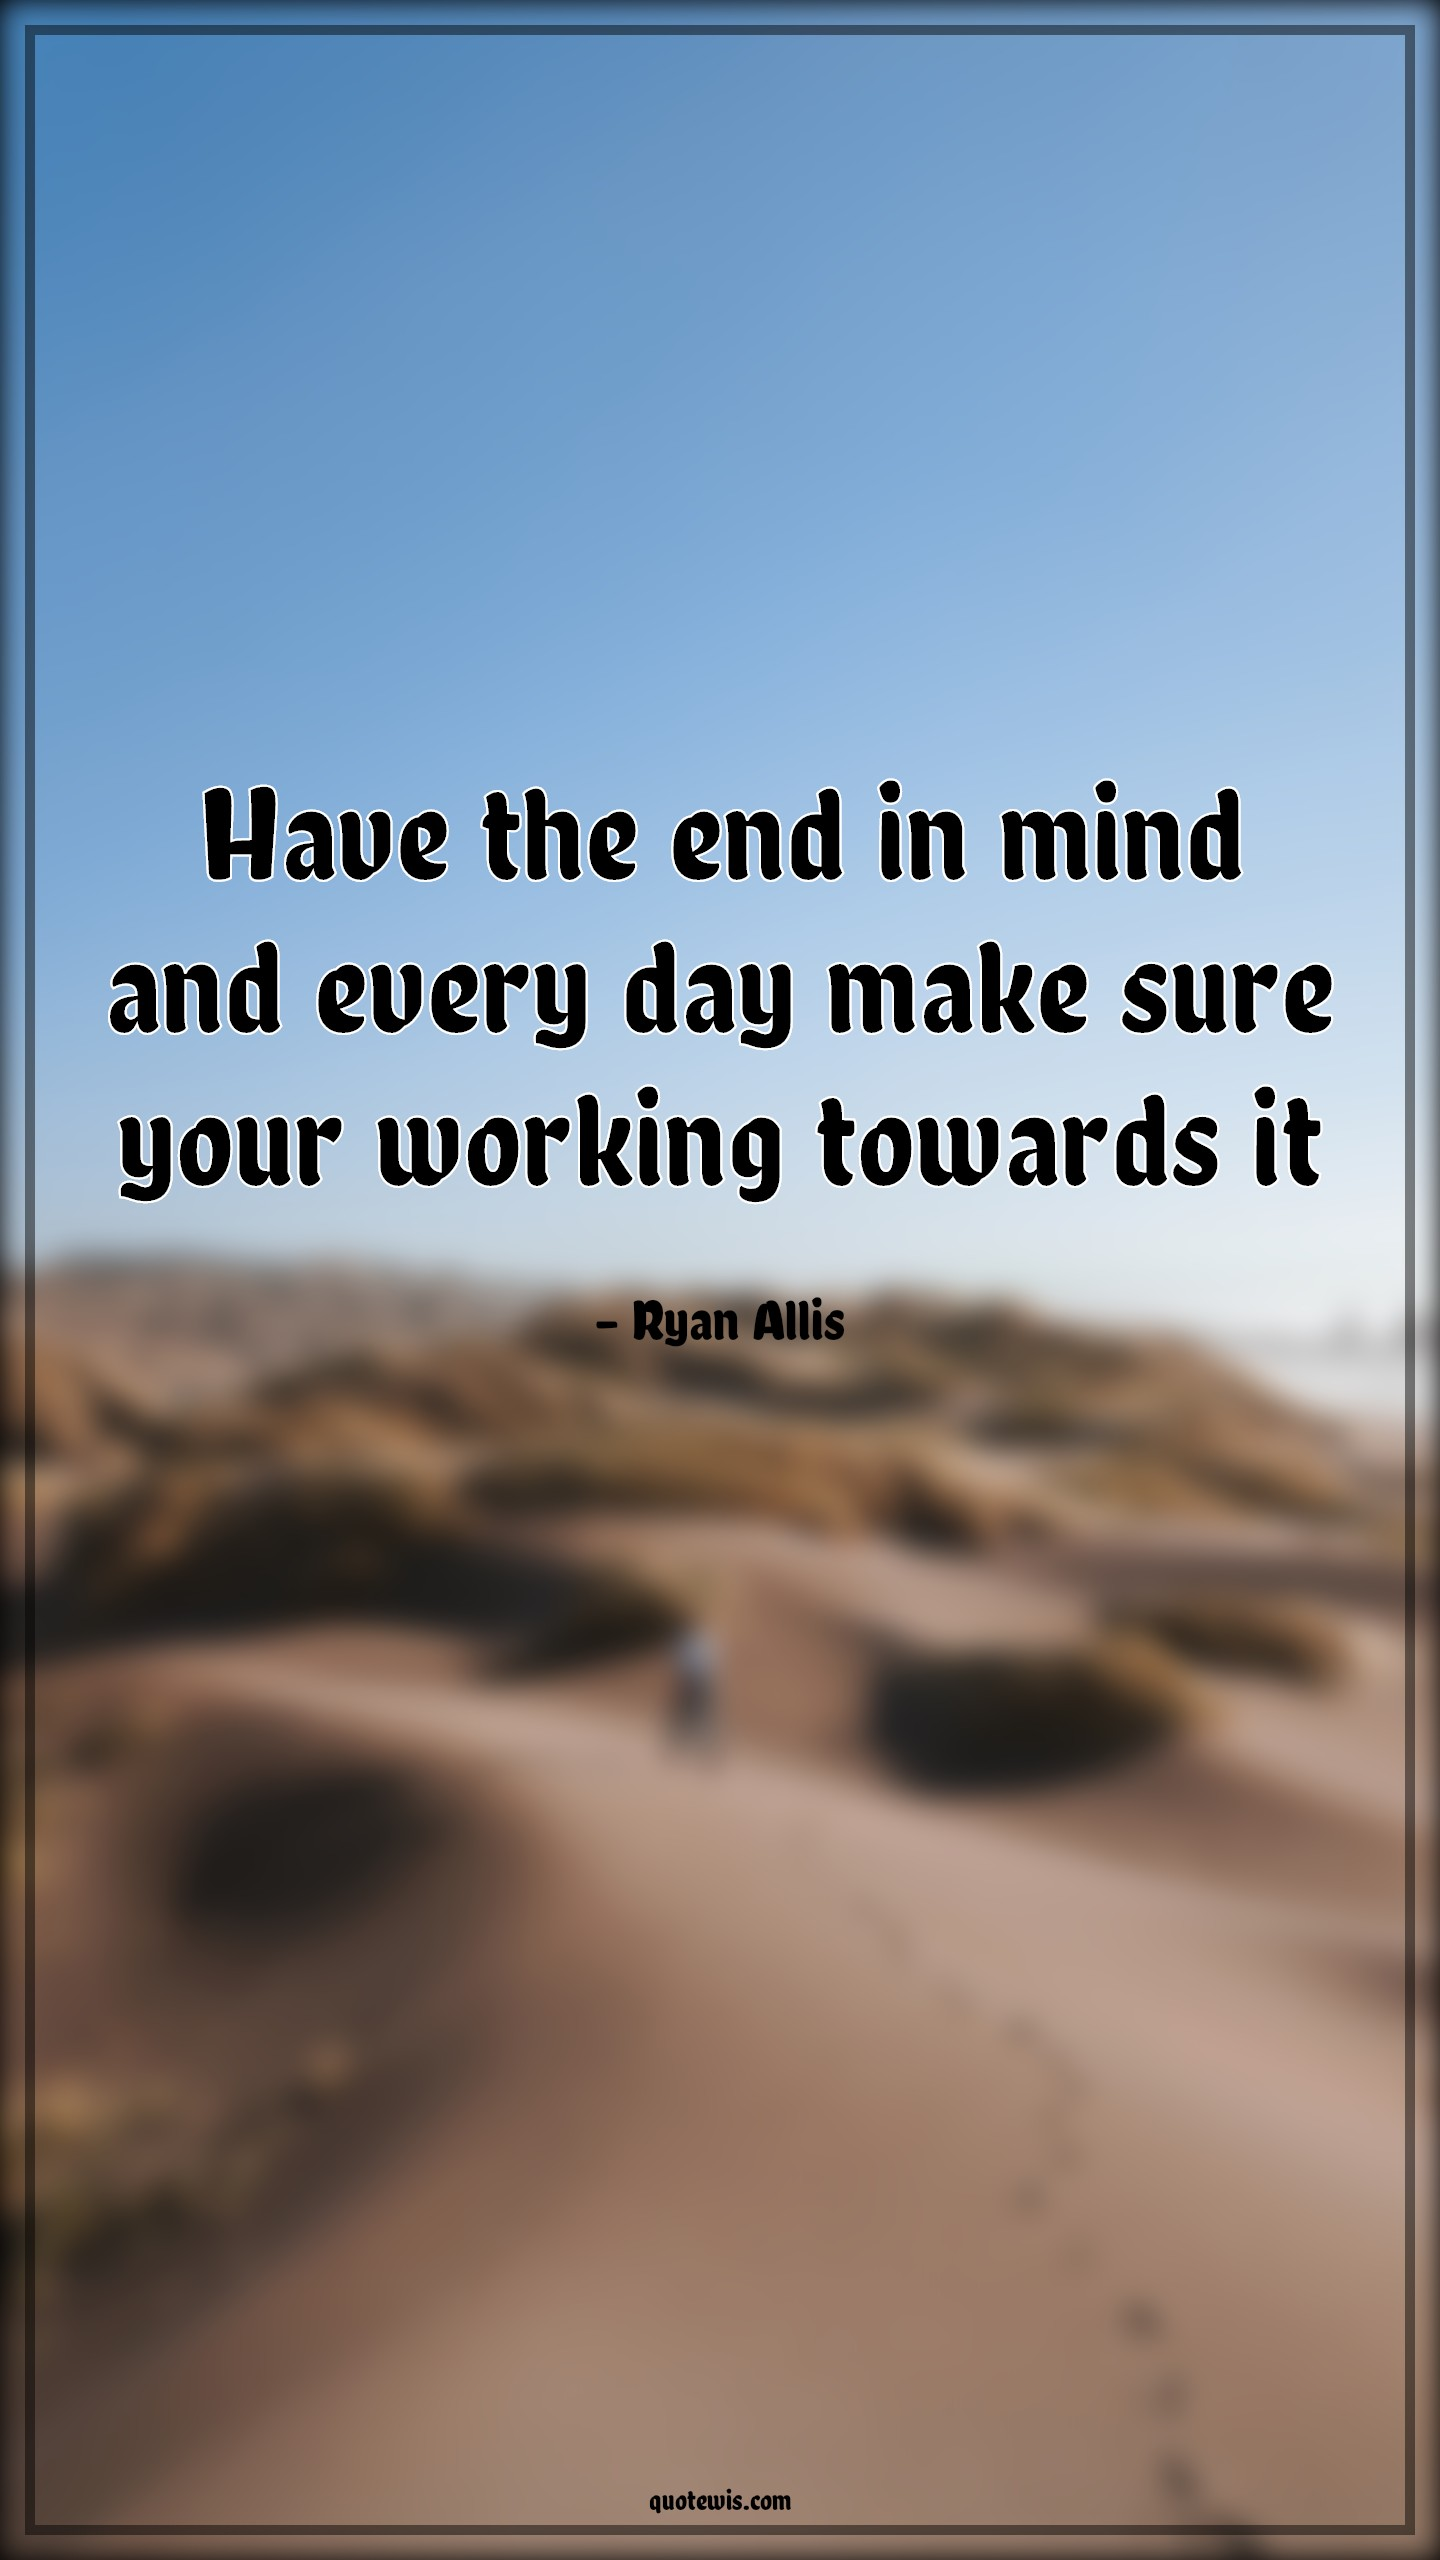 Have the end in mind and every day make sure your working towards it